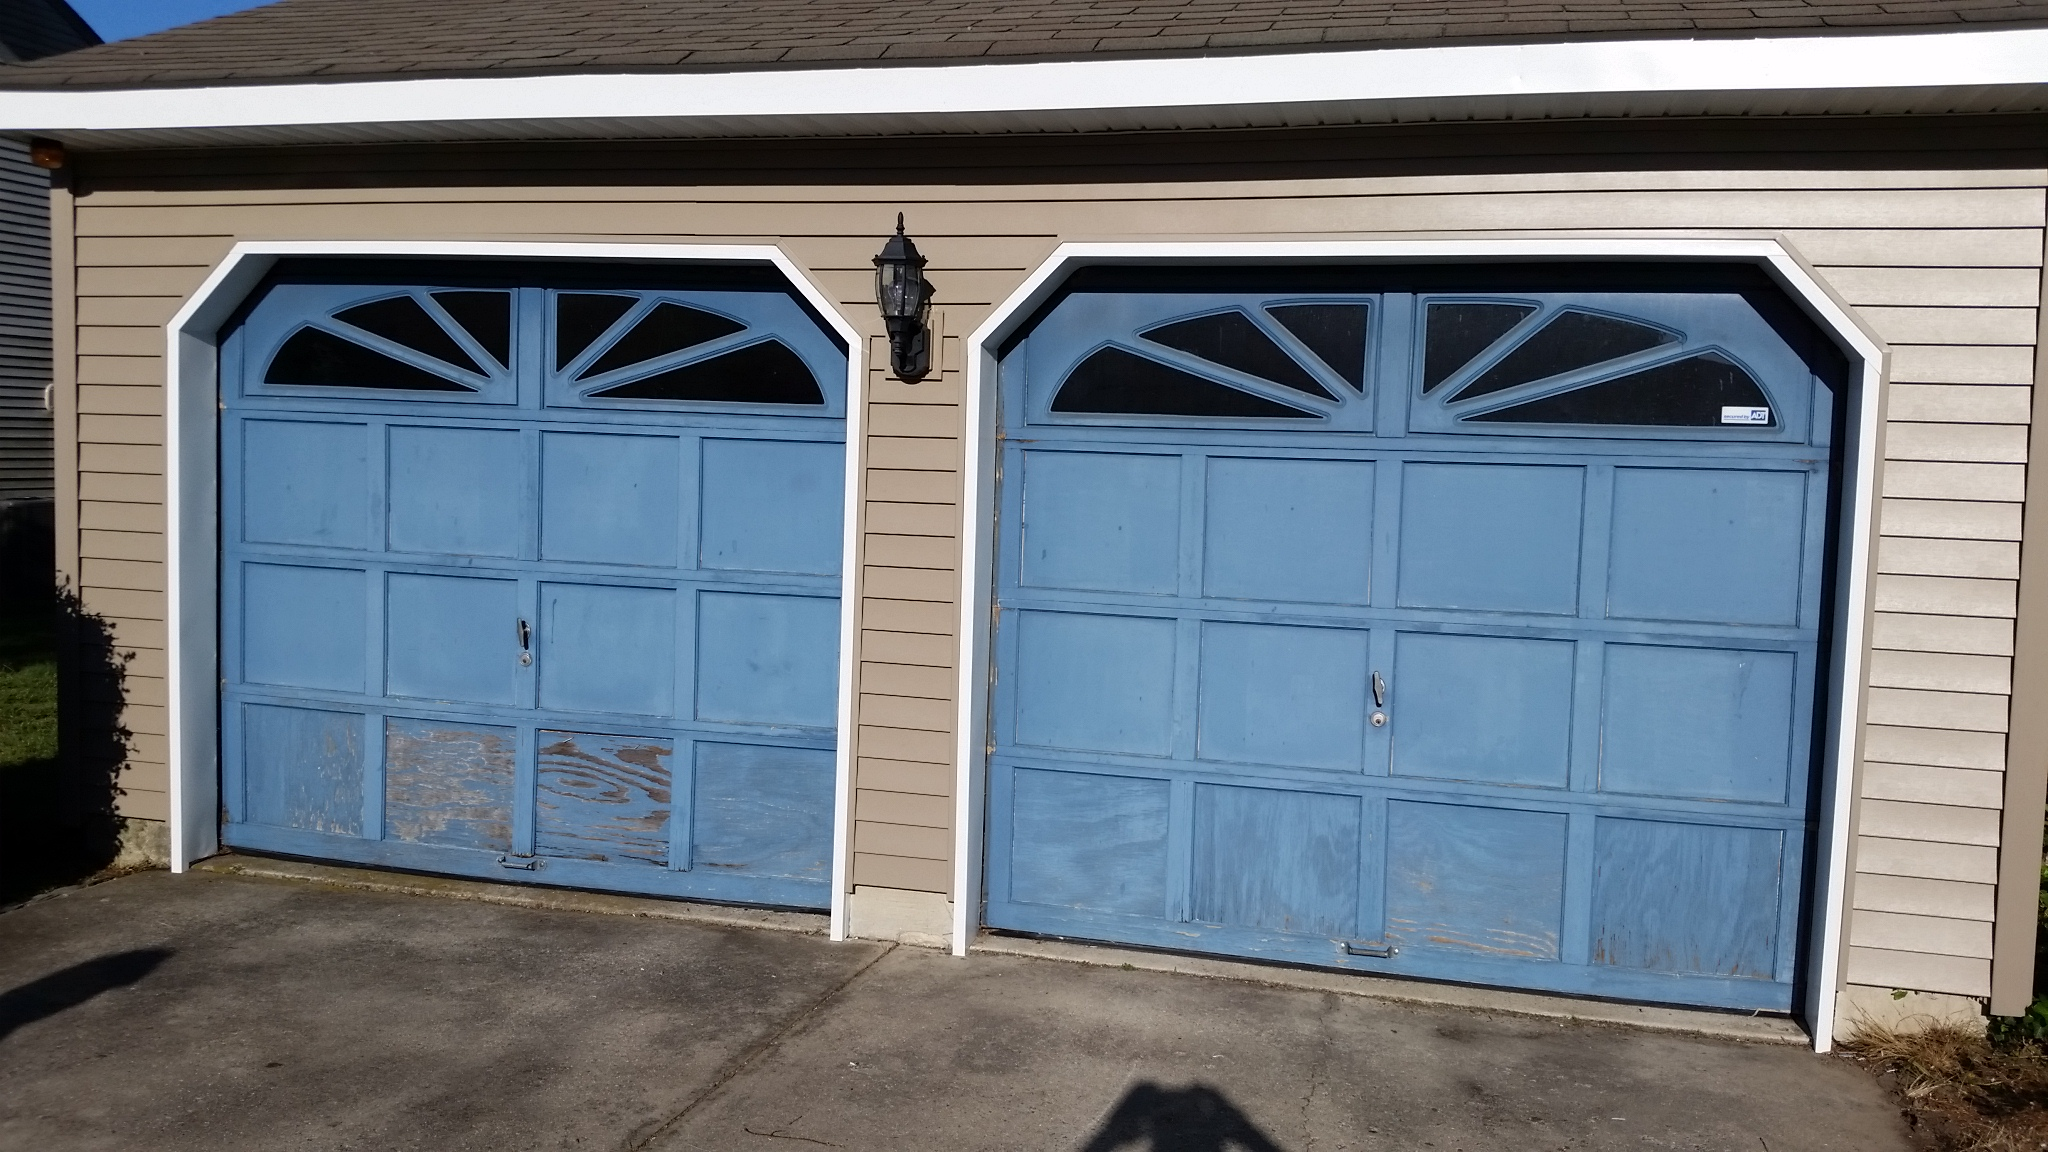 Clopay Garage Door Replacement And Install  Dave Moseley. Garage Door Opener Repair Cost. Pet Gates With Cat Door. Mid Century Modern Door Hardware. Replacement Garage Door. Steel Doors. Jeep Wrangler Two Door. Residential Garage Car Lift. Garage Storage Ideas Lowes